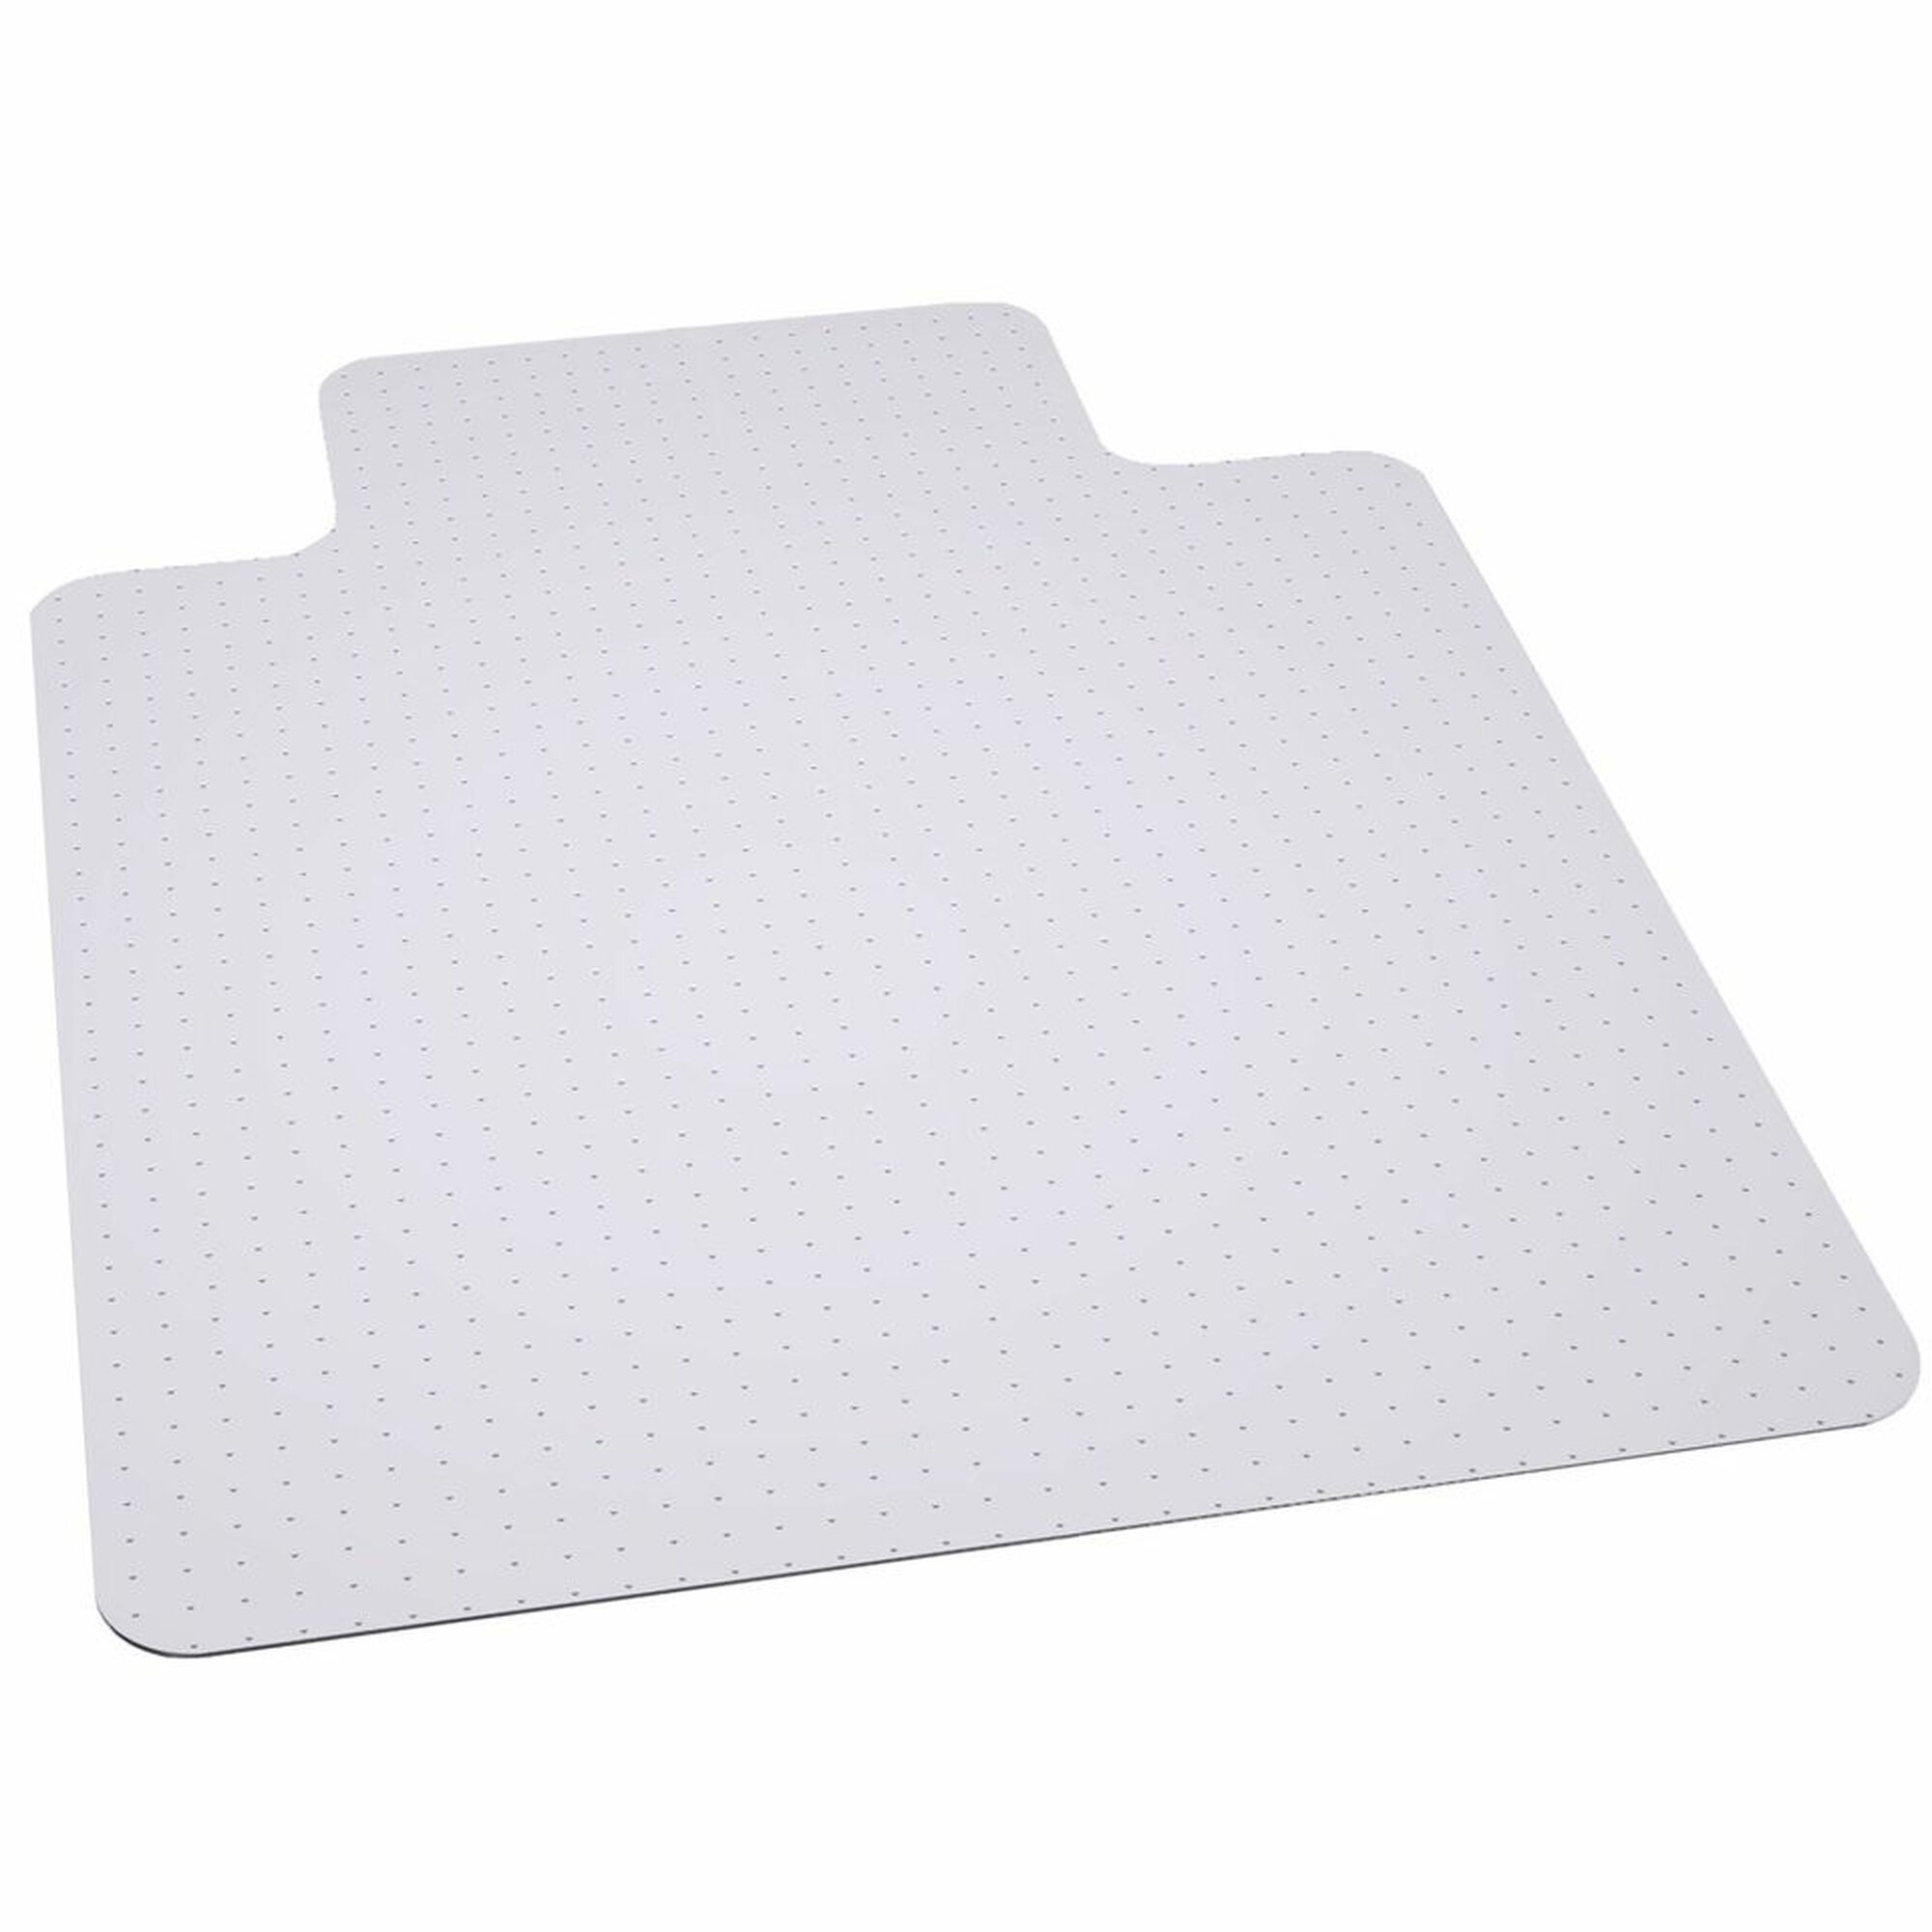 fice Essentials Chair Mats at low bud prices